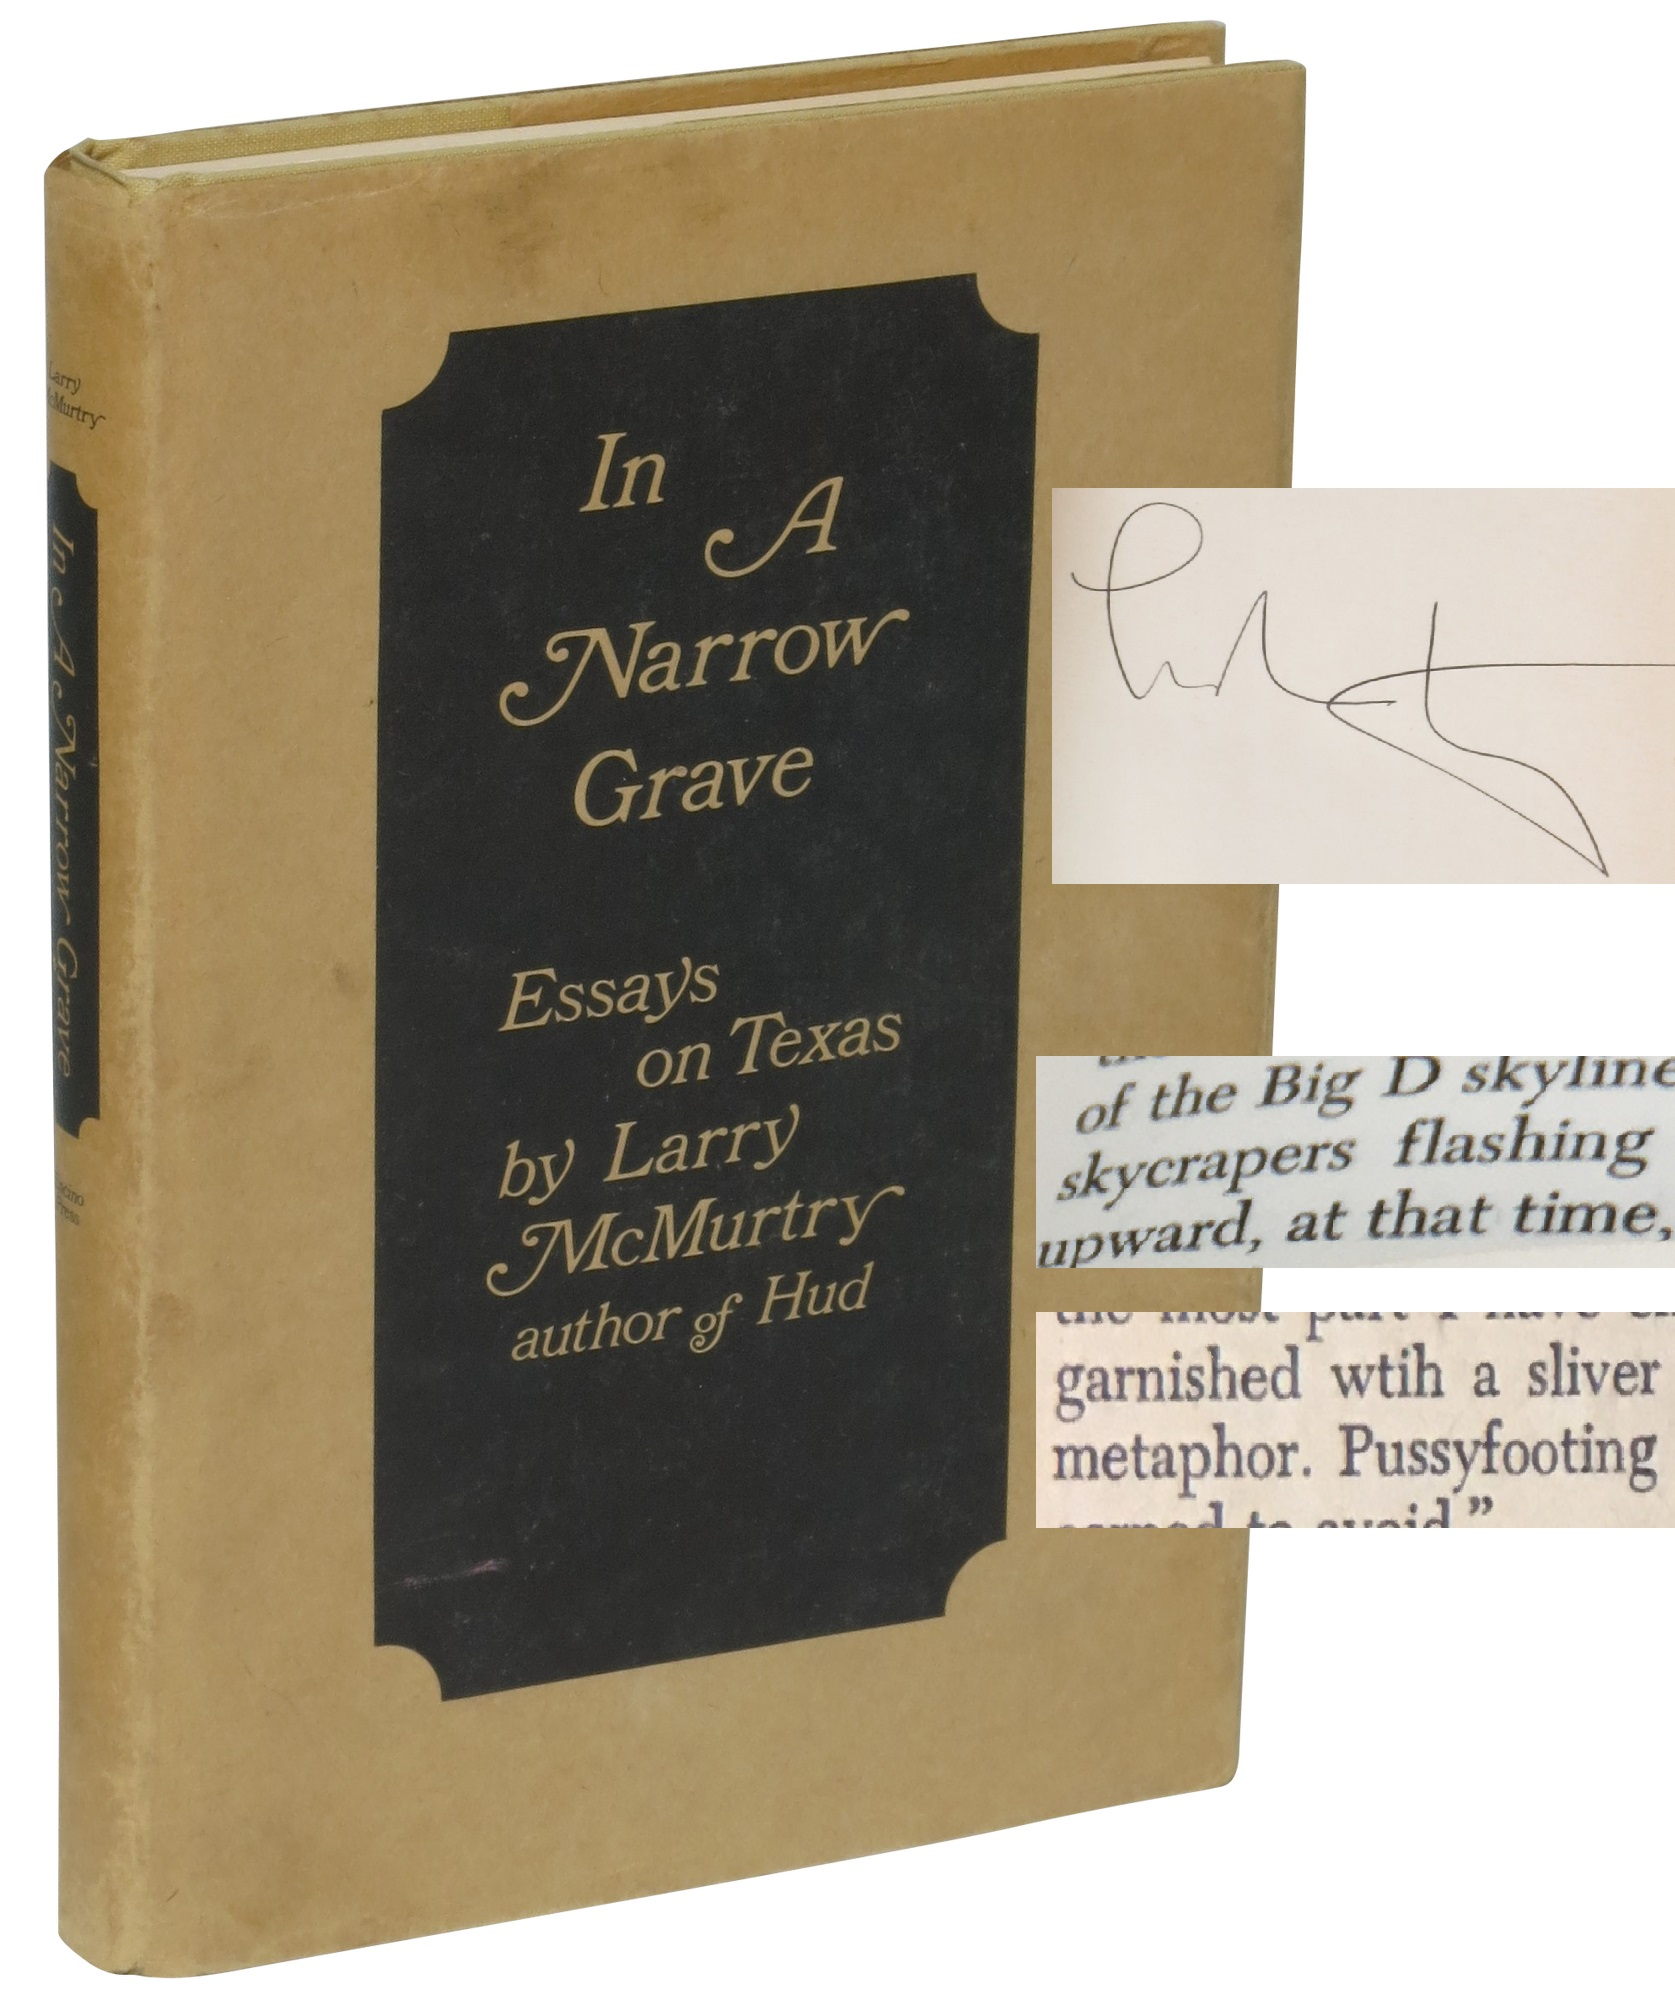 In a Narrow Grave by Larry McMurtry - First Edition Identification